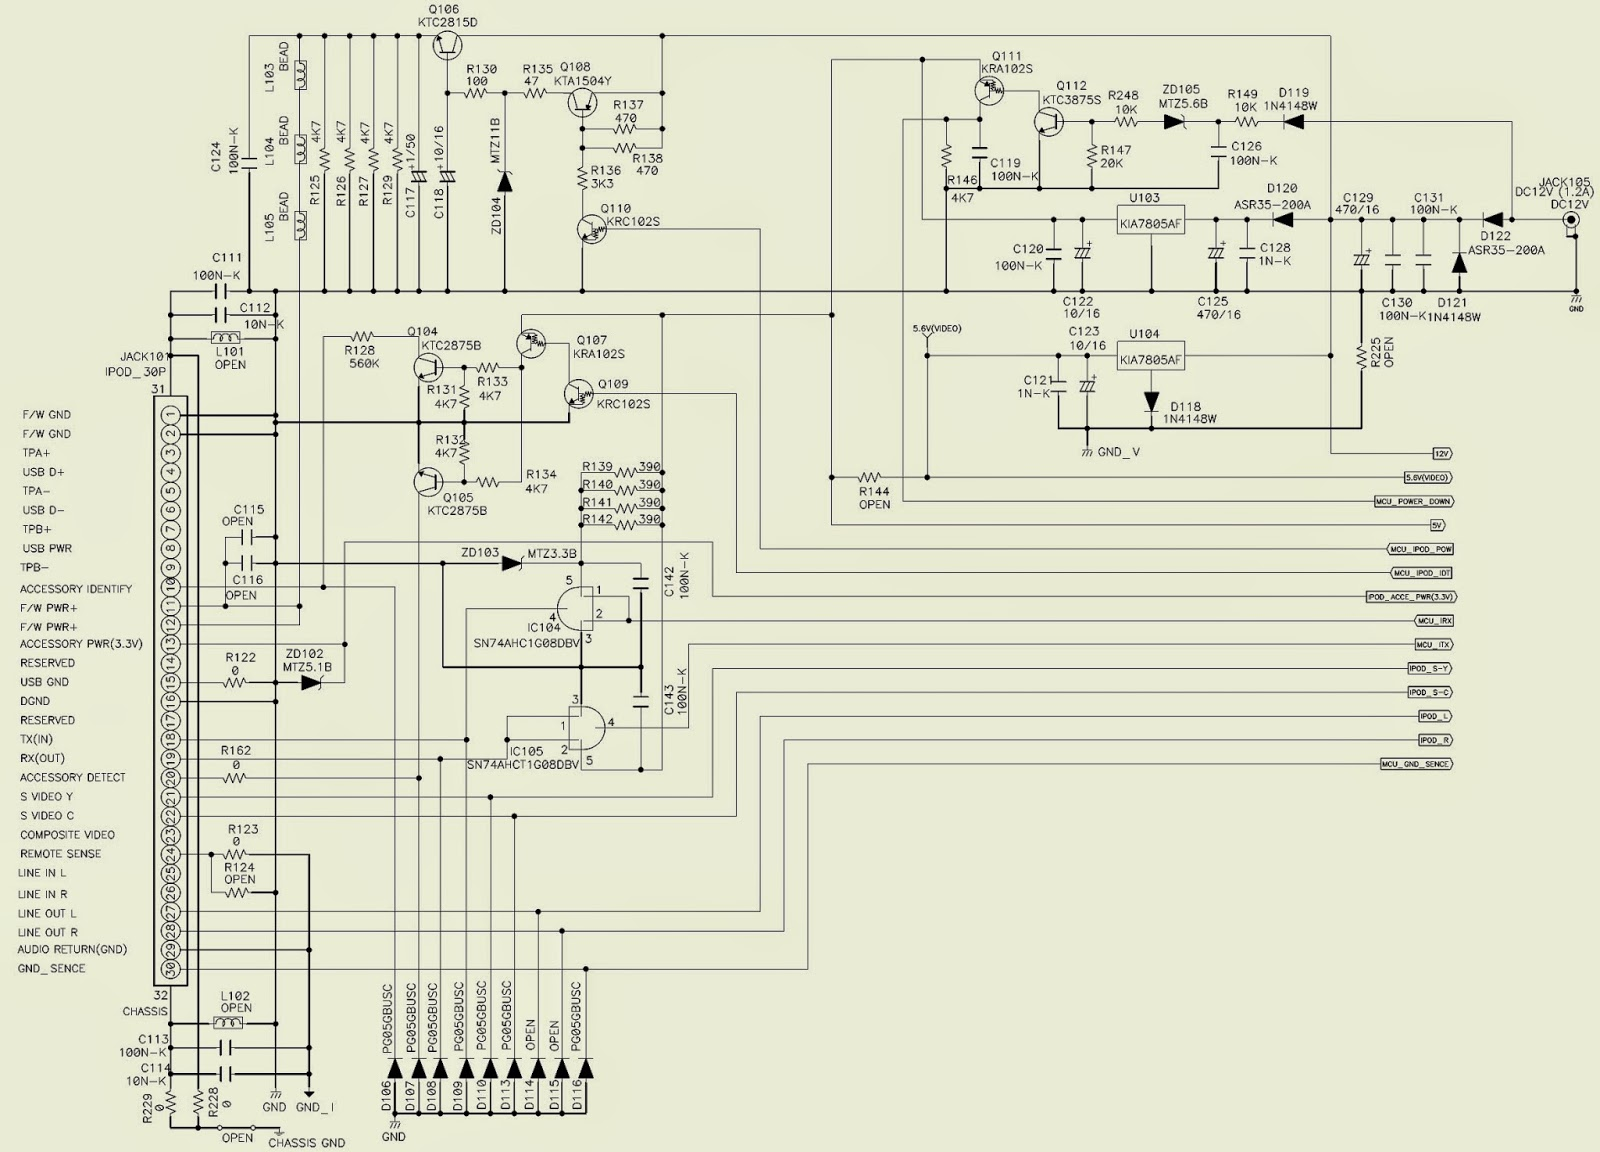 Visio Electrical Stencils Symbols also Portable Generator Wiring Diagram as well IPod Dock Schematics likewise MOS FET Power  lifier Circuit Diagram likewise Goodman Heat Pump Thermostat Wiring Diagram. on equipment schematic diagrams